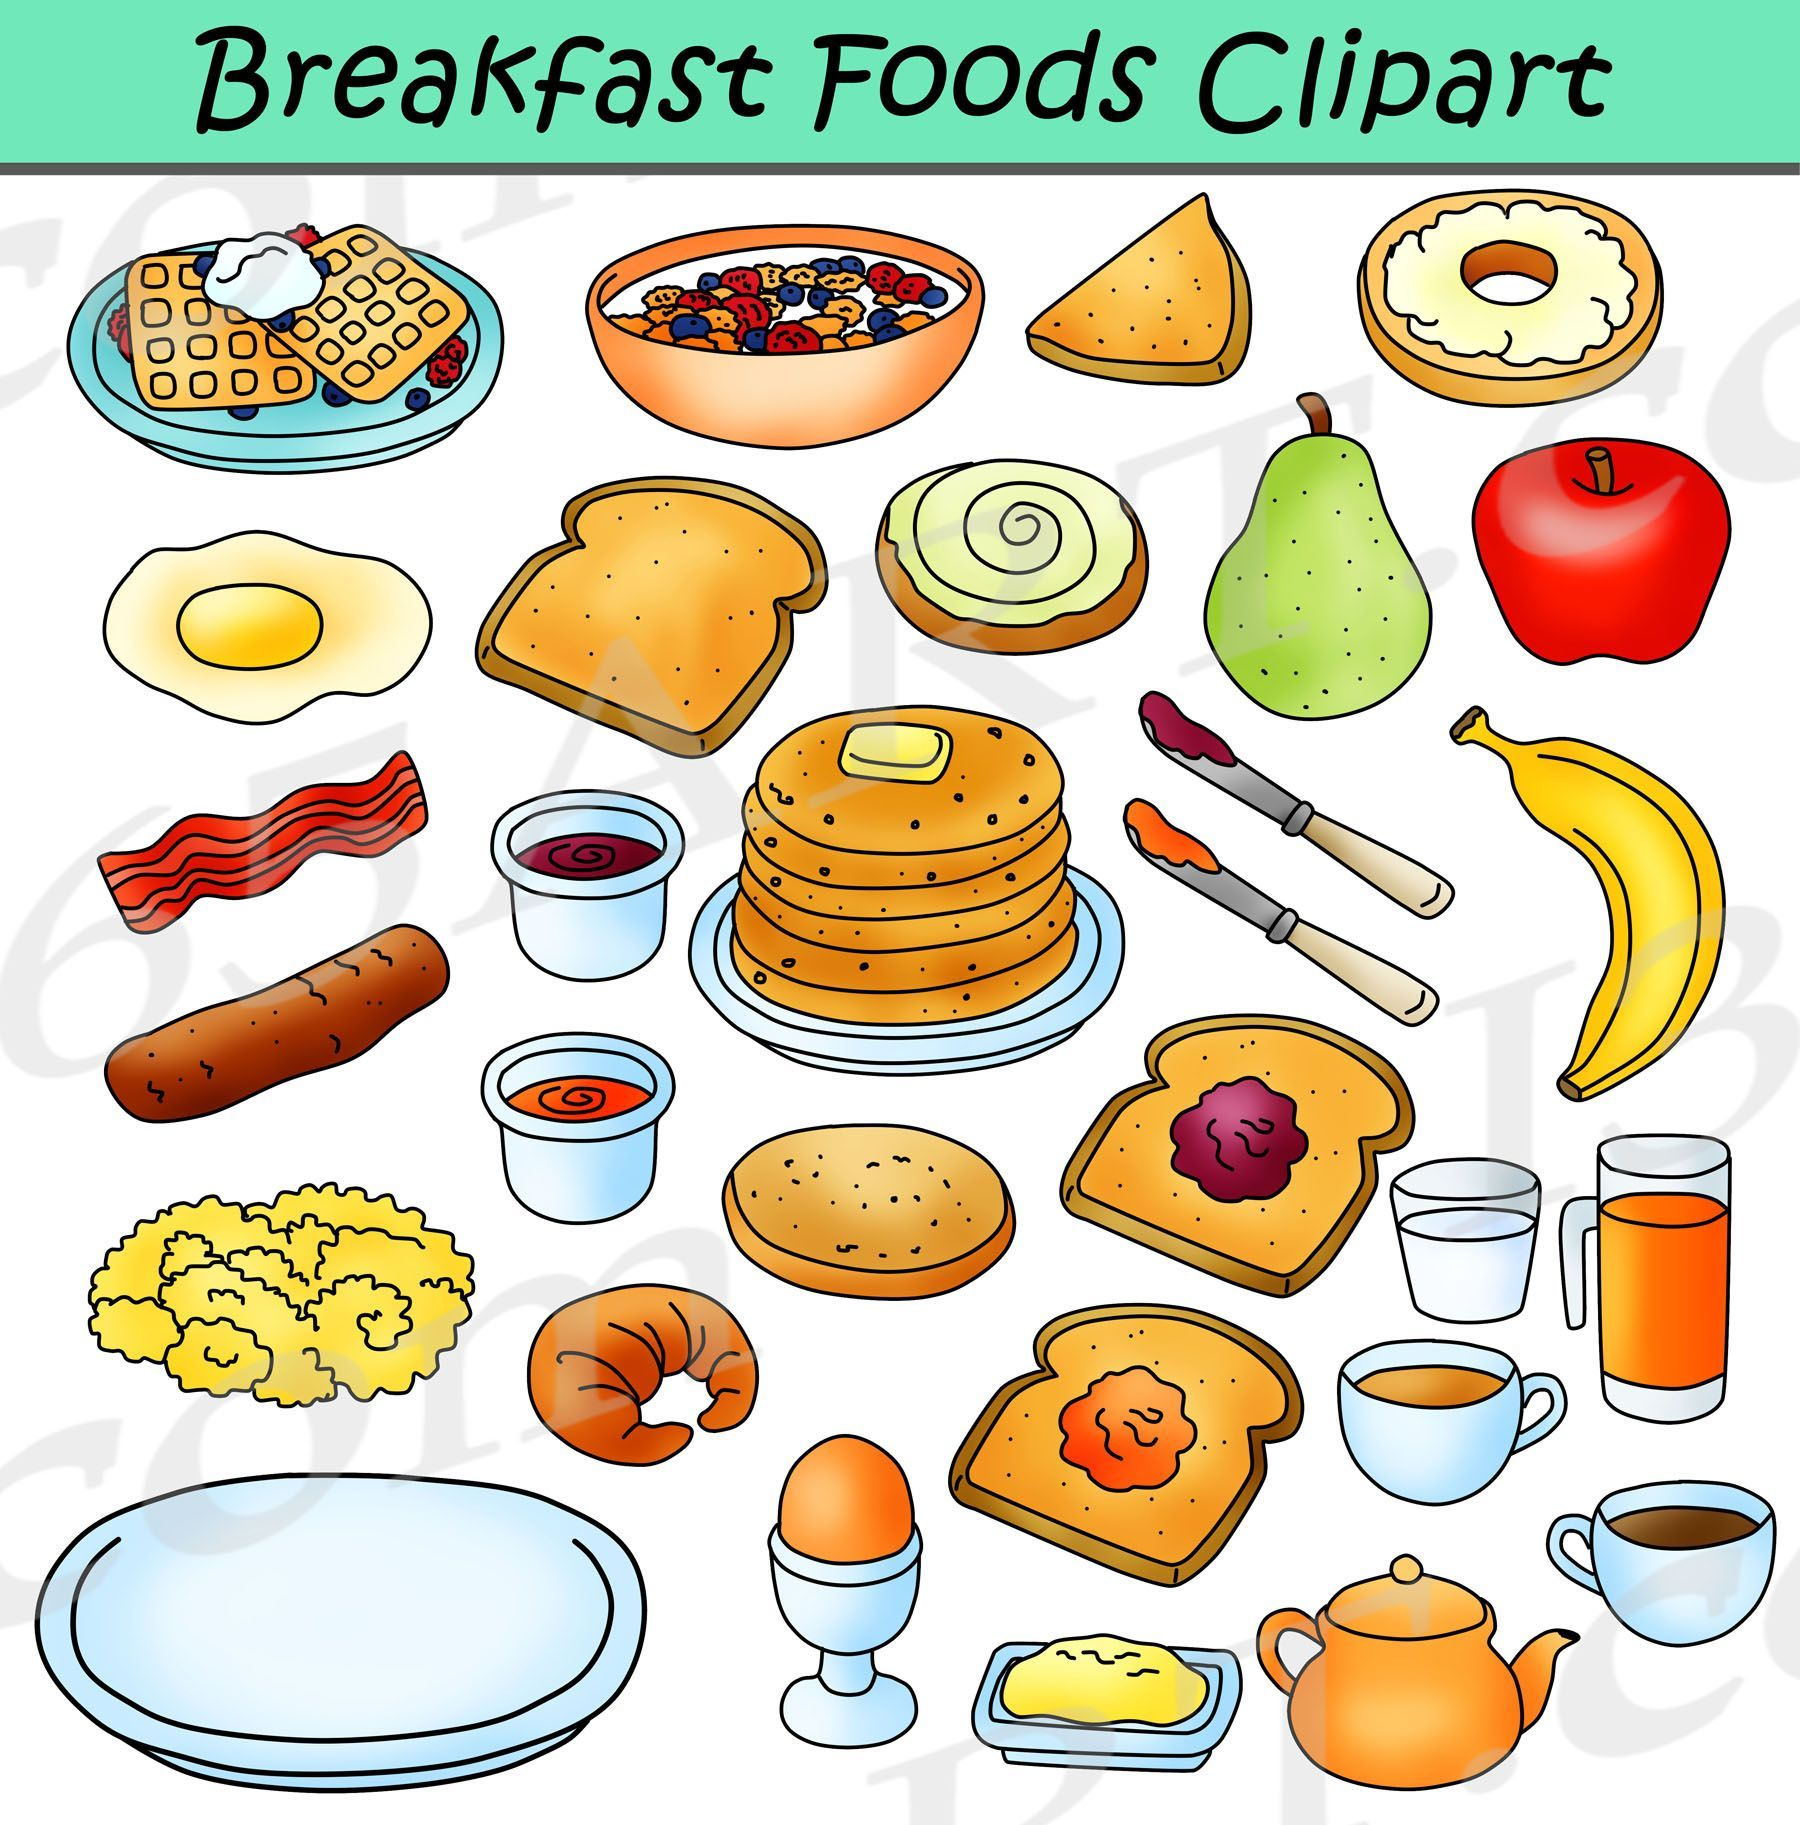 14 Breakfast Graphics Free Images - Breakfast Clip Art, Breakfast Clip Art  Free Vector Graphics and Eating Breakfast Clip Art / Newdesignfile.com